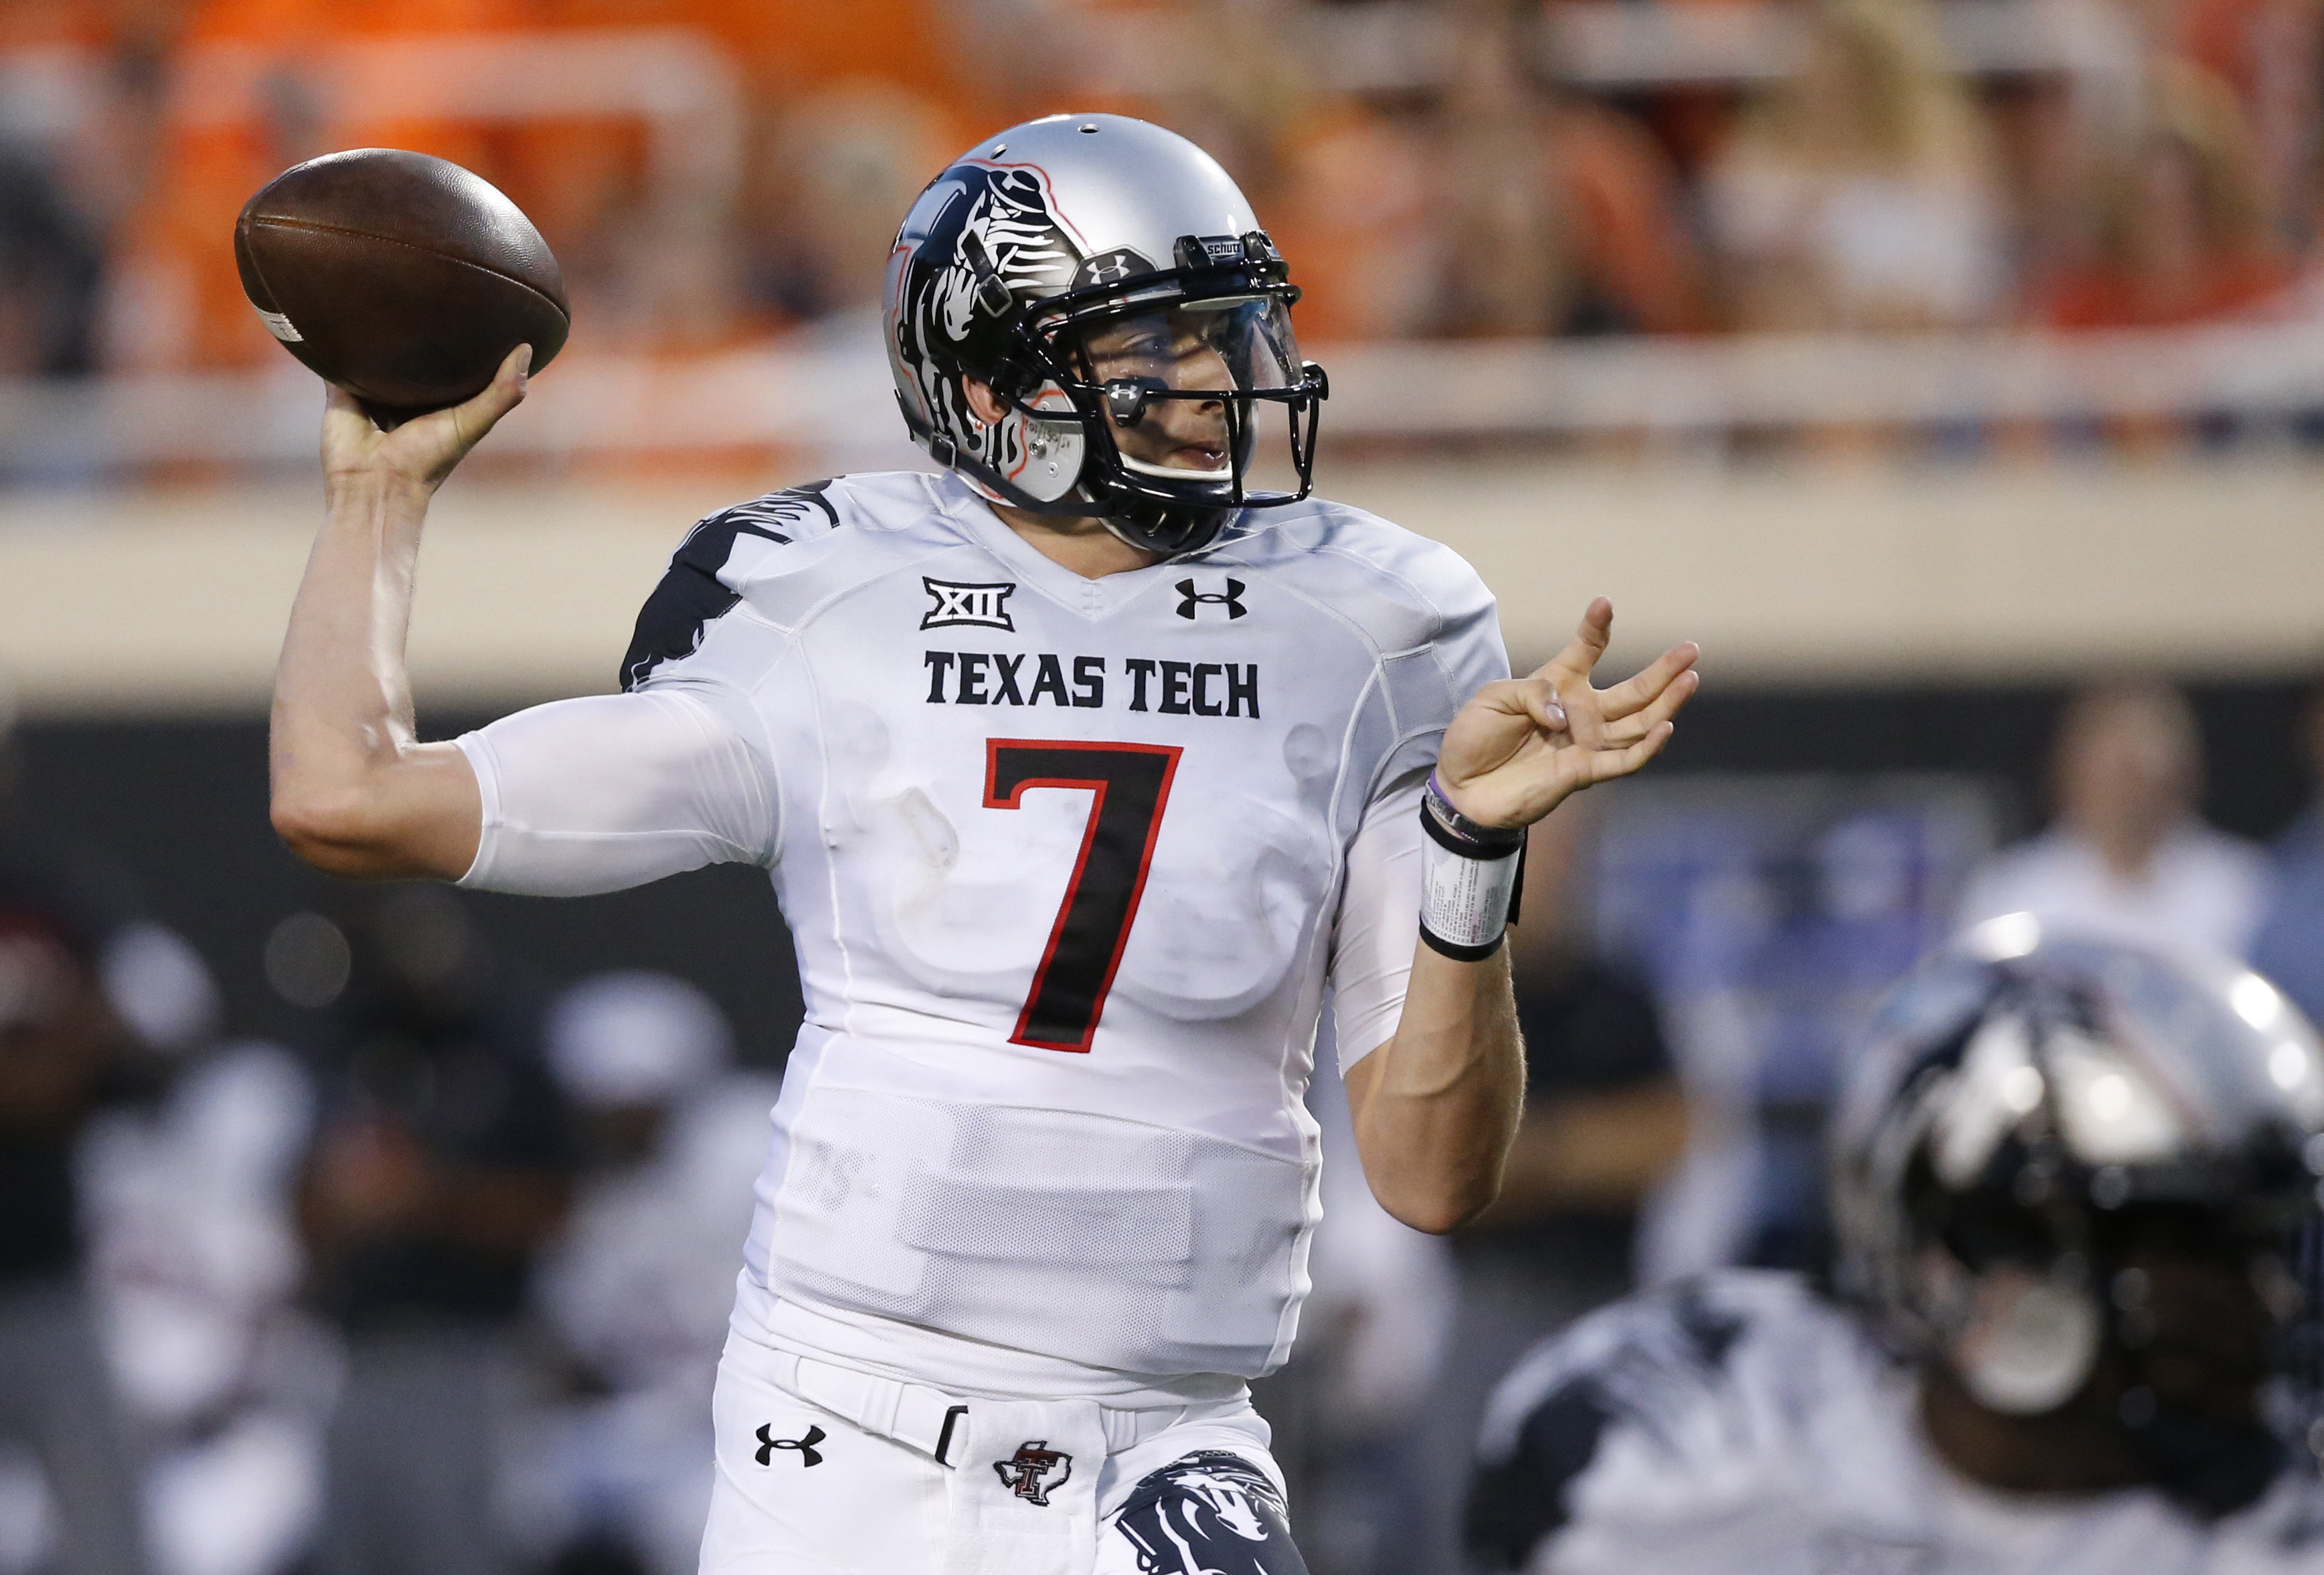 In this Sept. 25, 2014 photo, former Texas Tech quarterback Davis Webb (7) is pictured during an NCAA college football game between Texas Tech and Oklahoma State in Stillwater, Okla. Webb, a graduate transfer, has been named the starting quarterback for C